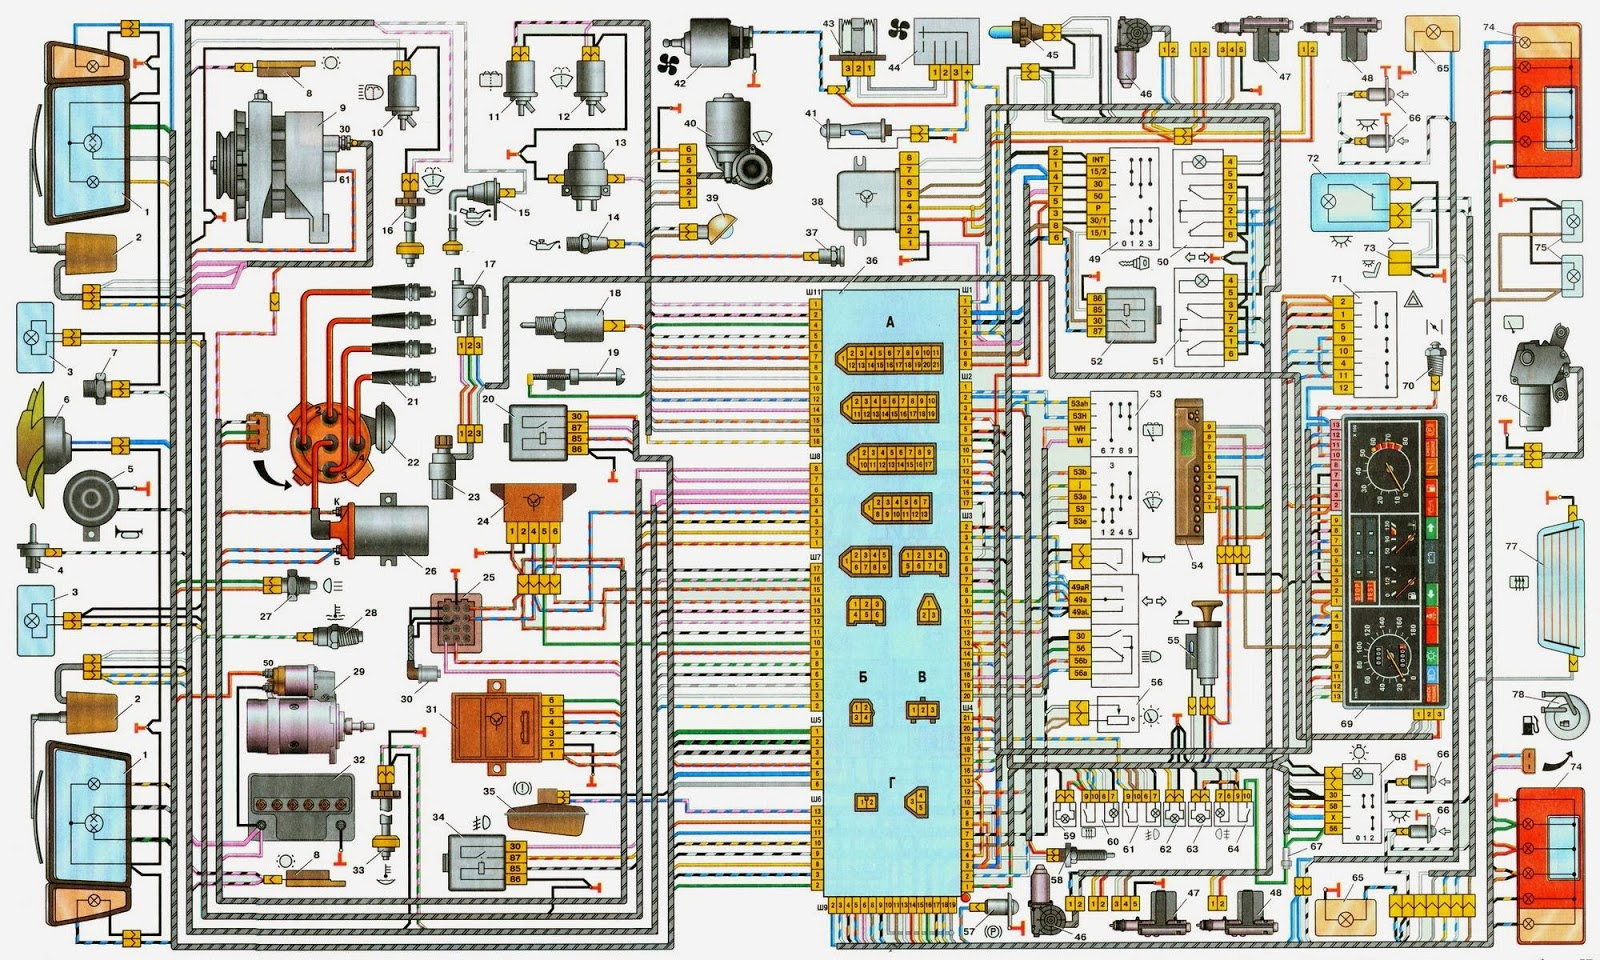 Distribution Board Wiring Diagram as well How To Read Electrical Wiring Diagrams Wiring Diagram Edit   Wire moreover Ford Escape Hybrid Ac  pressor Tube Assem 29459 besides Productshow in addition DPSG OUOD002 1837 19 10OCT02 1. on motor starter wiring diagram